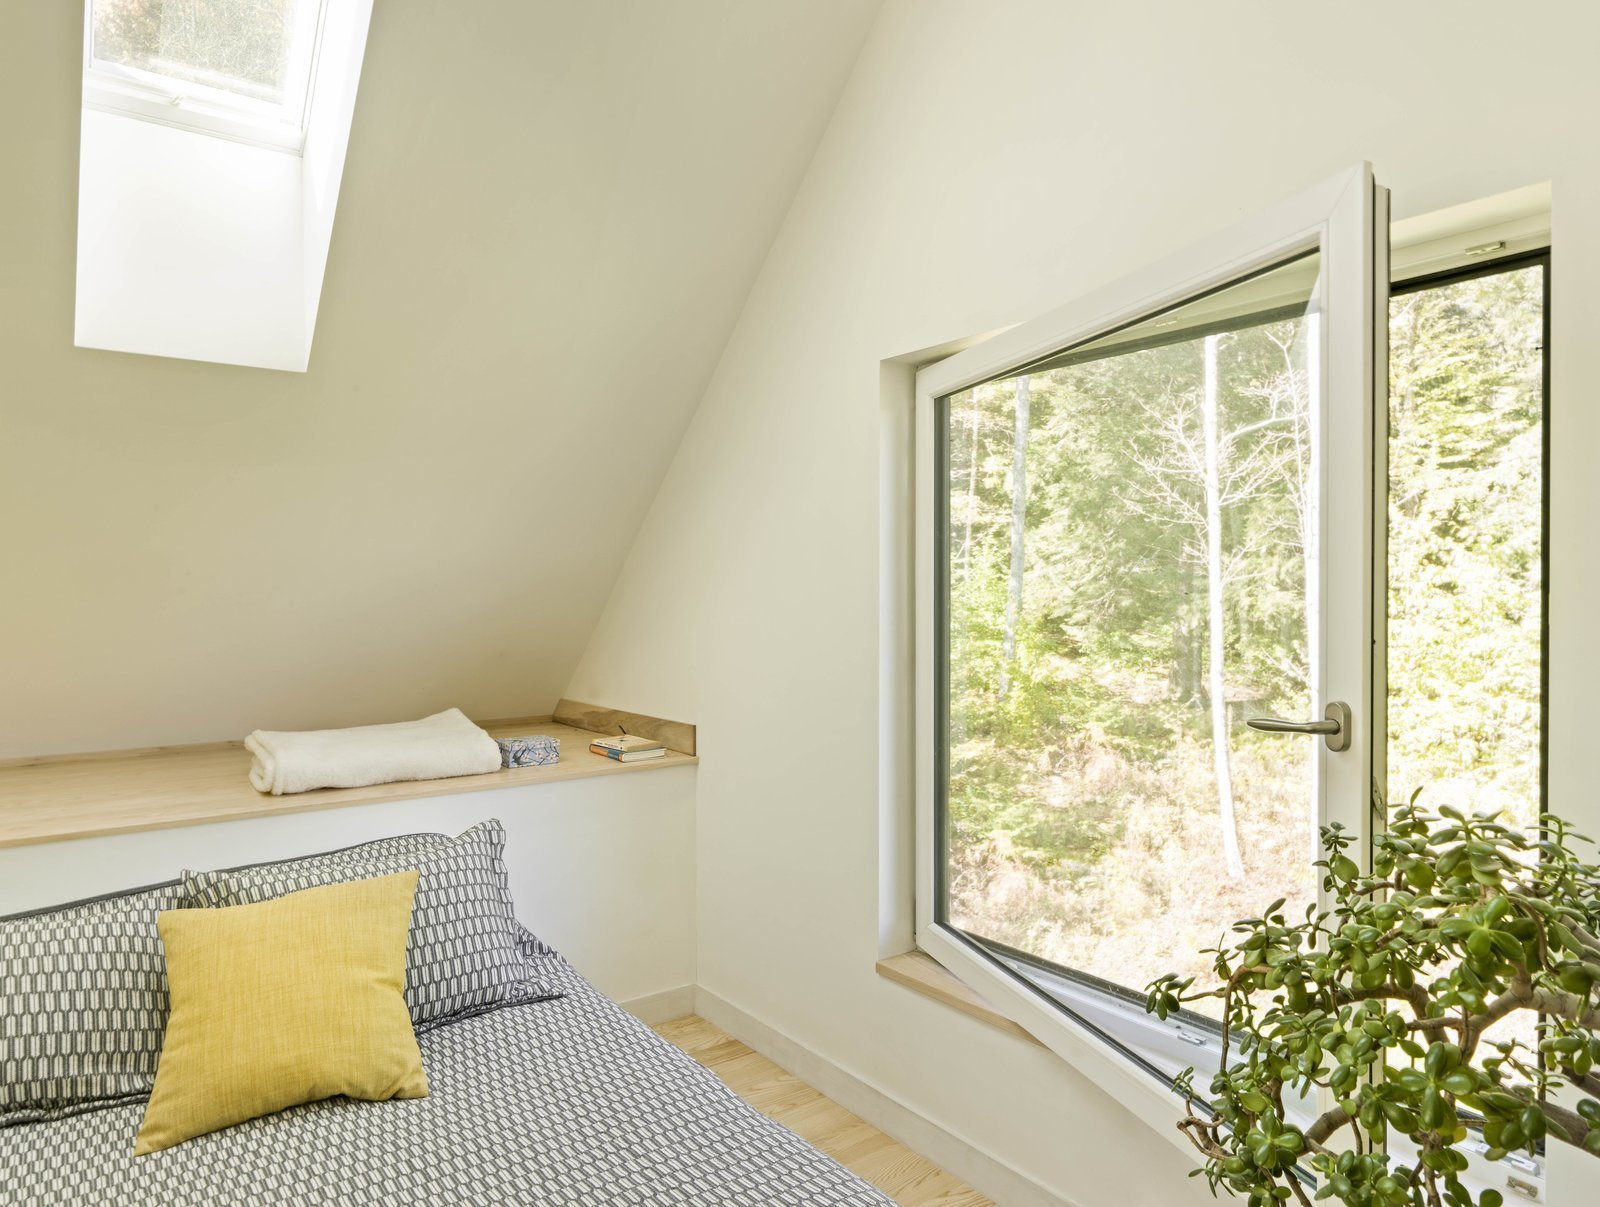 Bedroom, Bed, Shelves, and Light Hardwood Floor  Photo 9 of 13 in A Little Black Cabin Keeps Things Simple for a Family of Four in Vermont